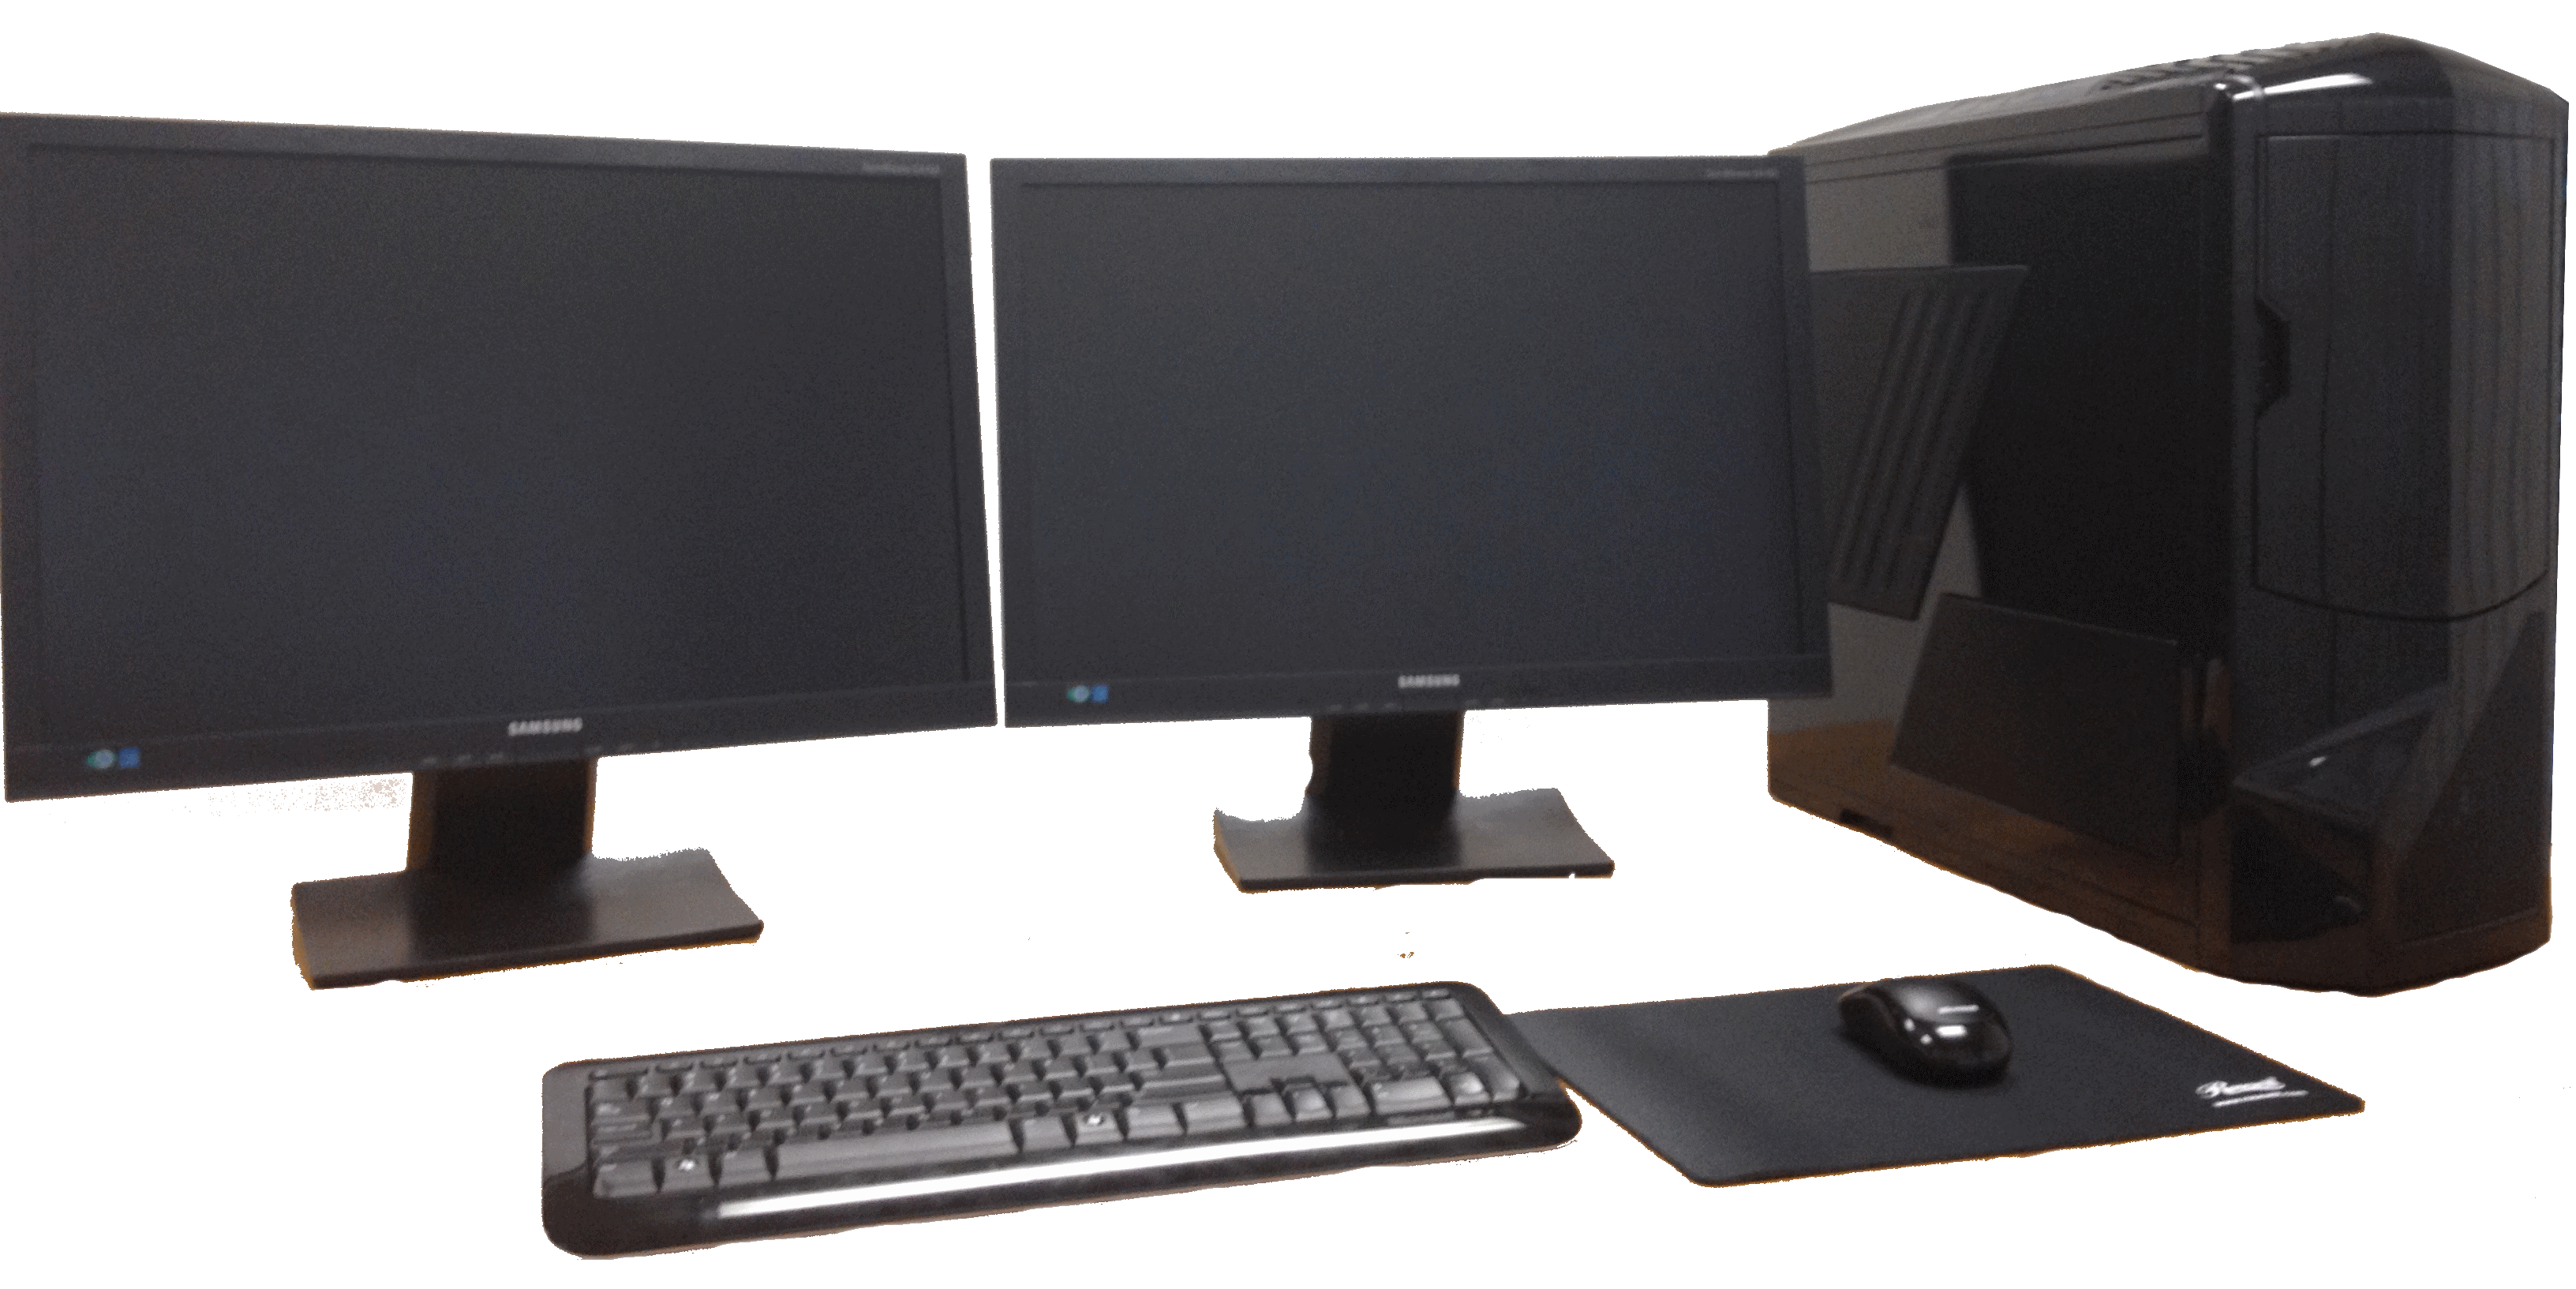 CogDesktopWorkstation2